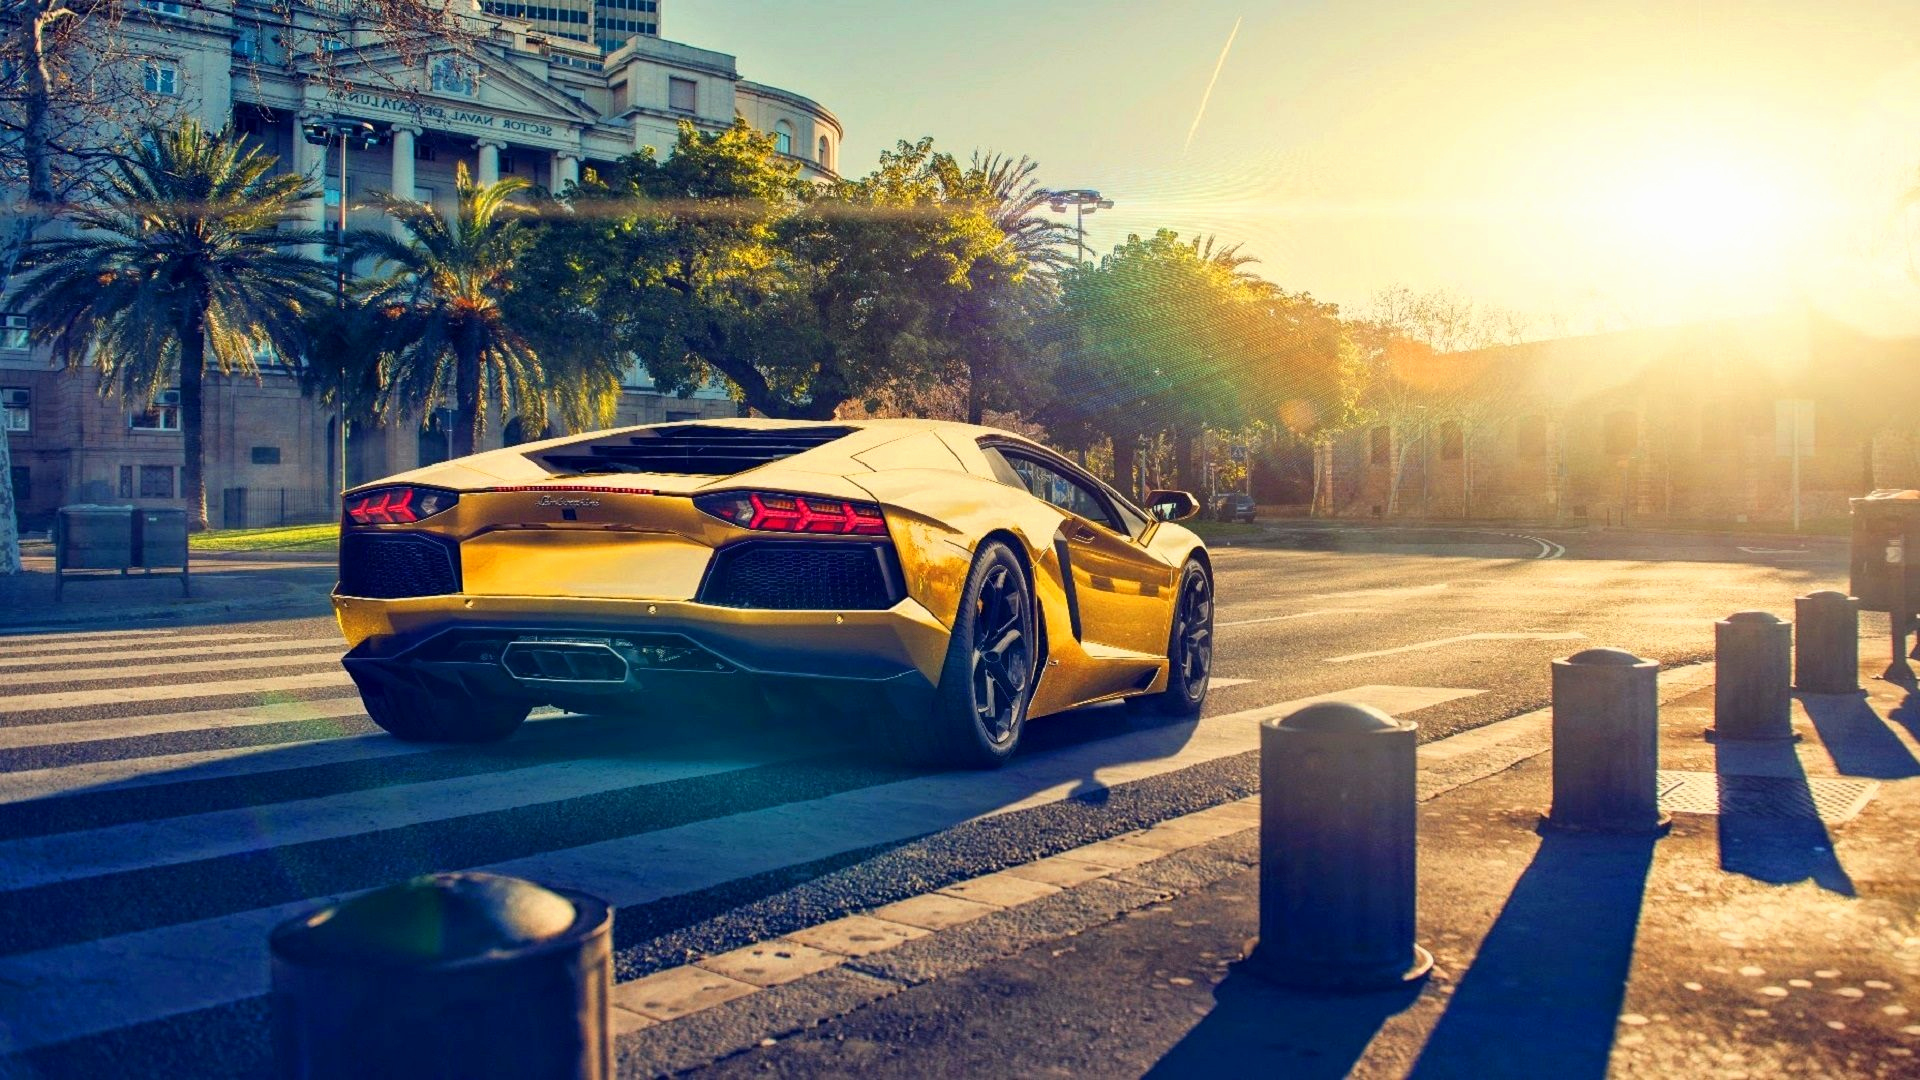 gold car wallpaper Beautiful lamborghini aventador lp700 4 gold color car sunset 4k wallpaper